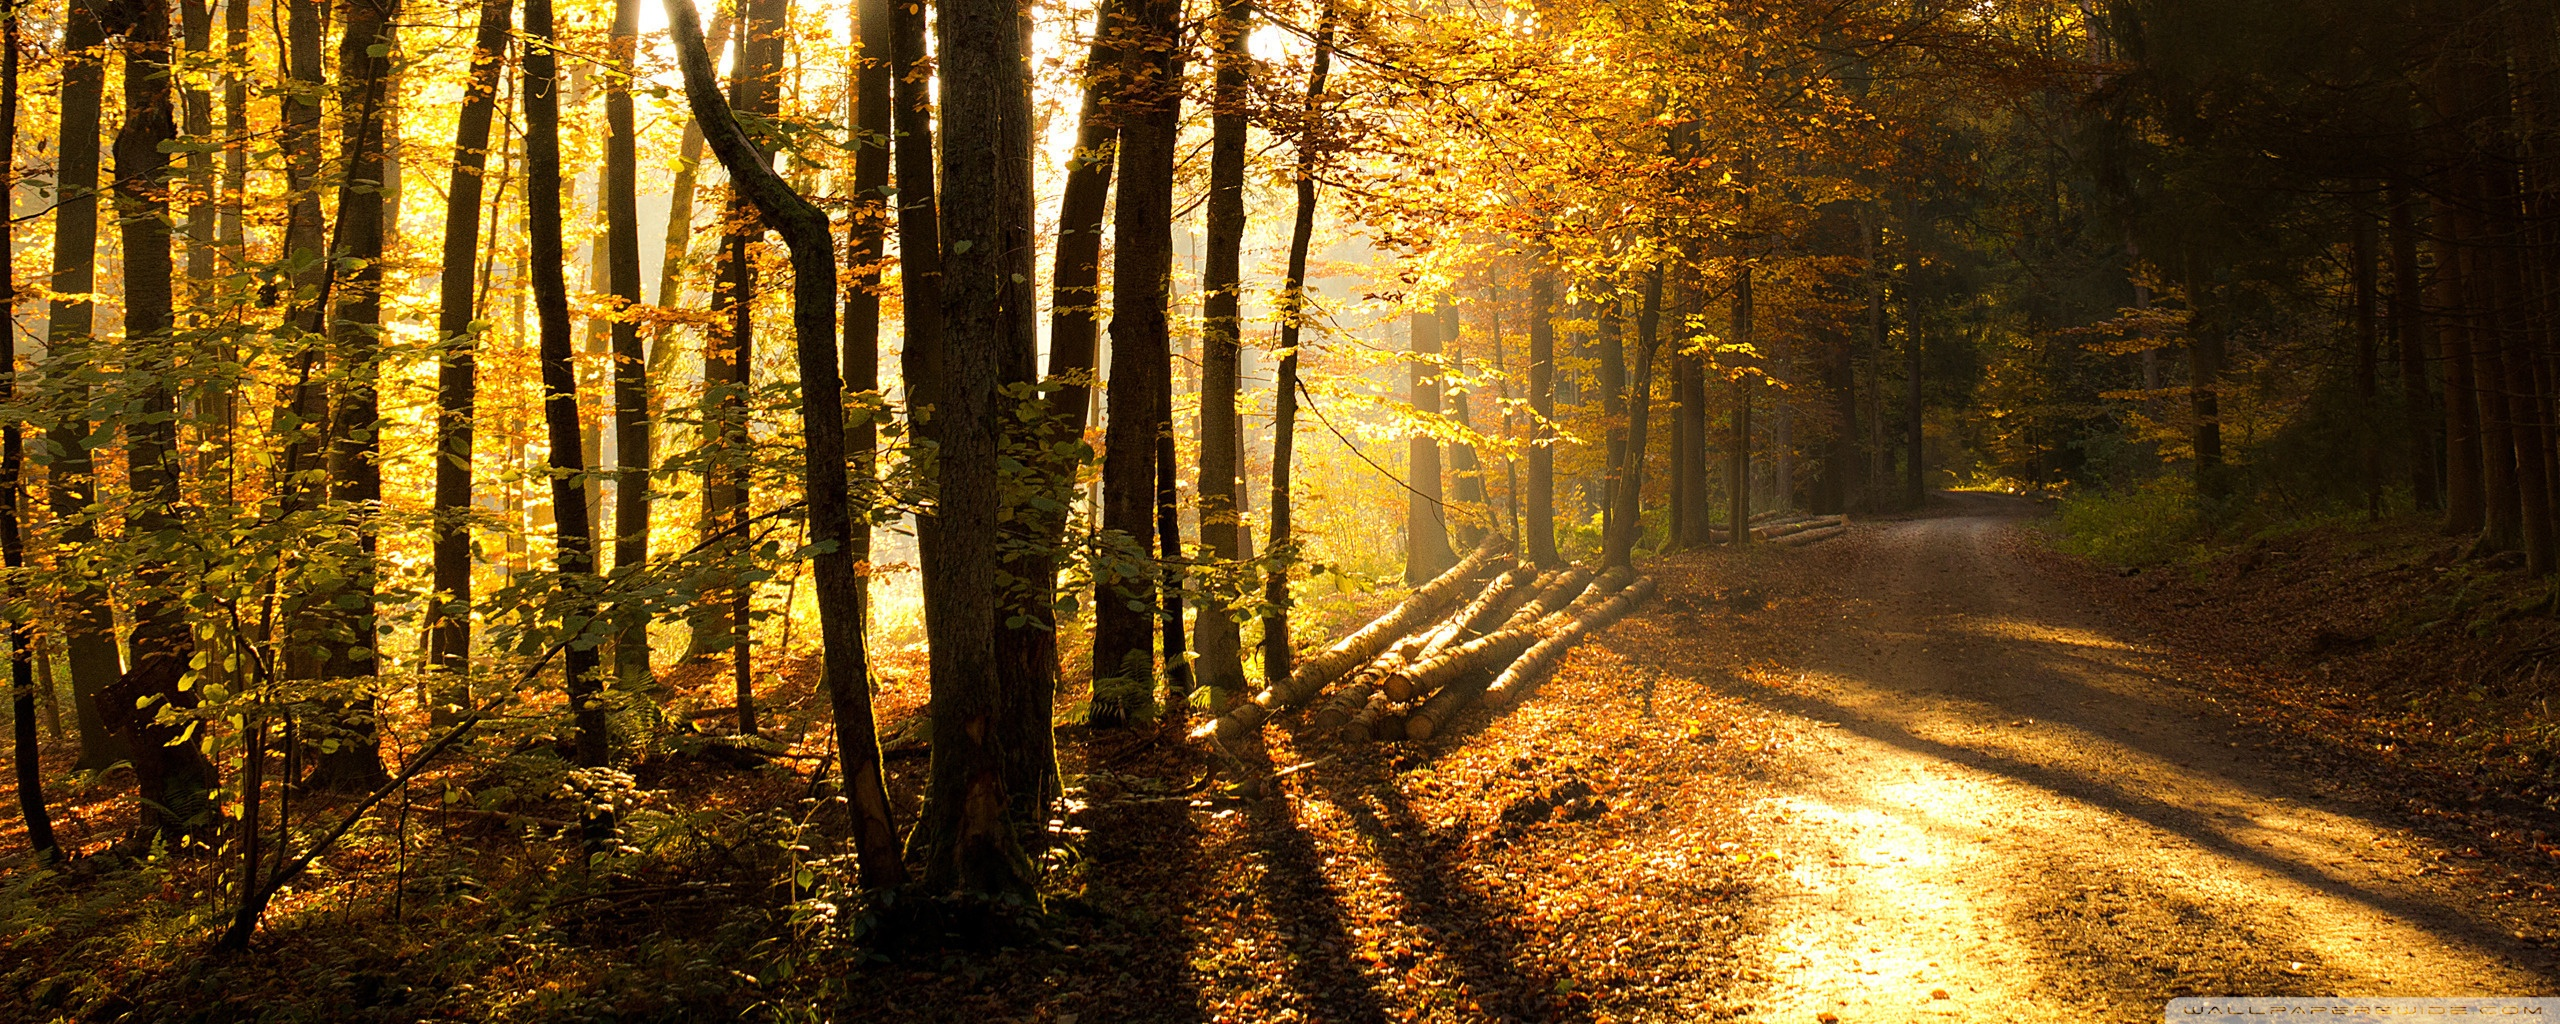 Beautiful Forest Road Wallpaper 2560x1024 34946